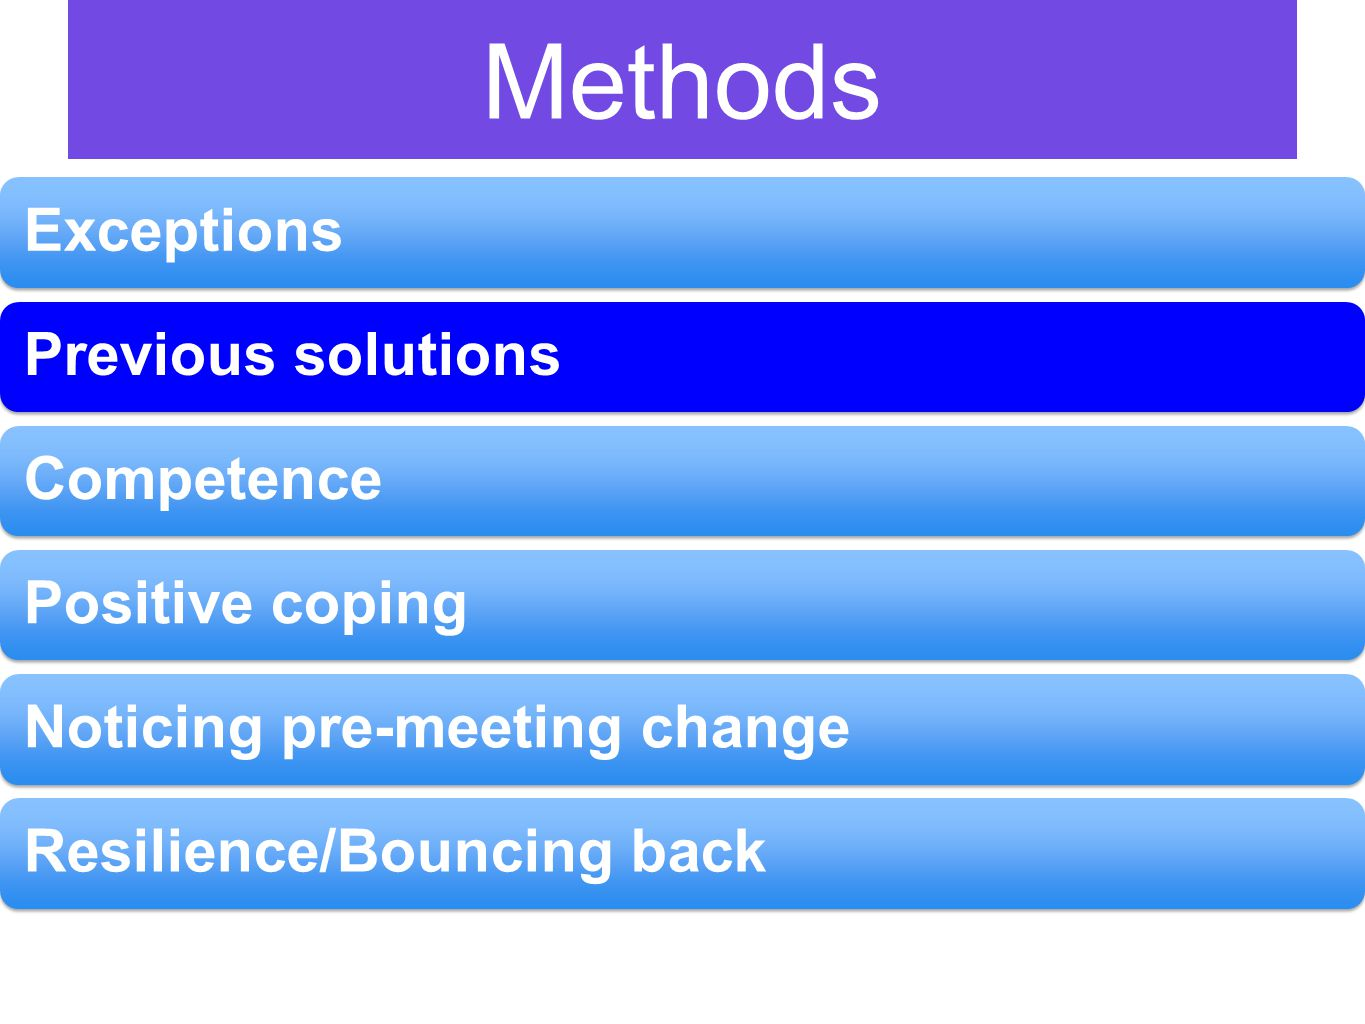 Methods ExceptionsPrevious solutionsCompetencePositive copingNoticing pre-meeting changeResilience/Bouncing back